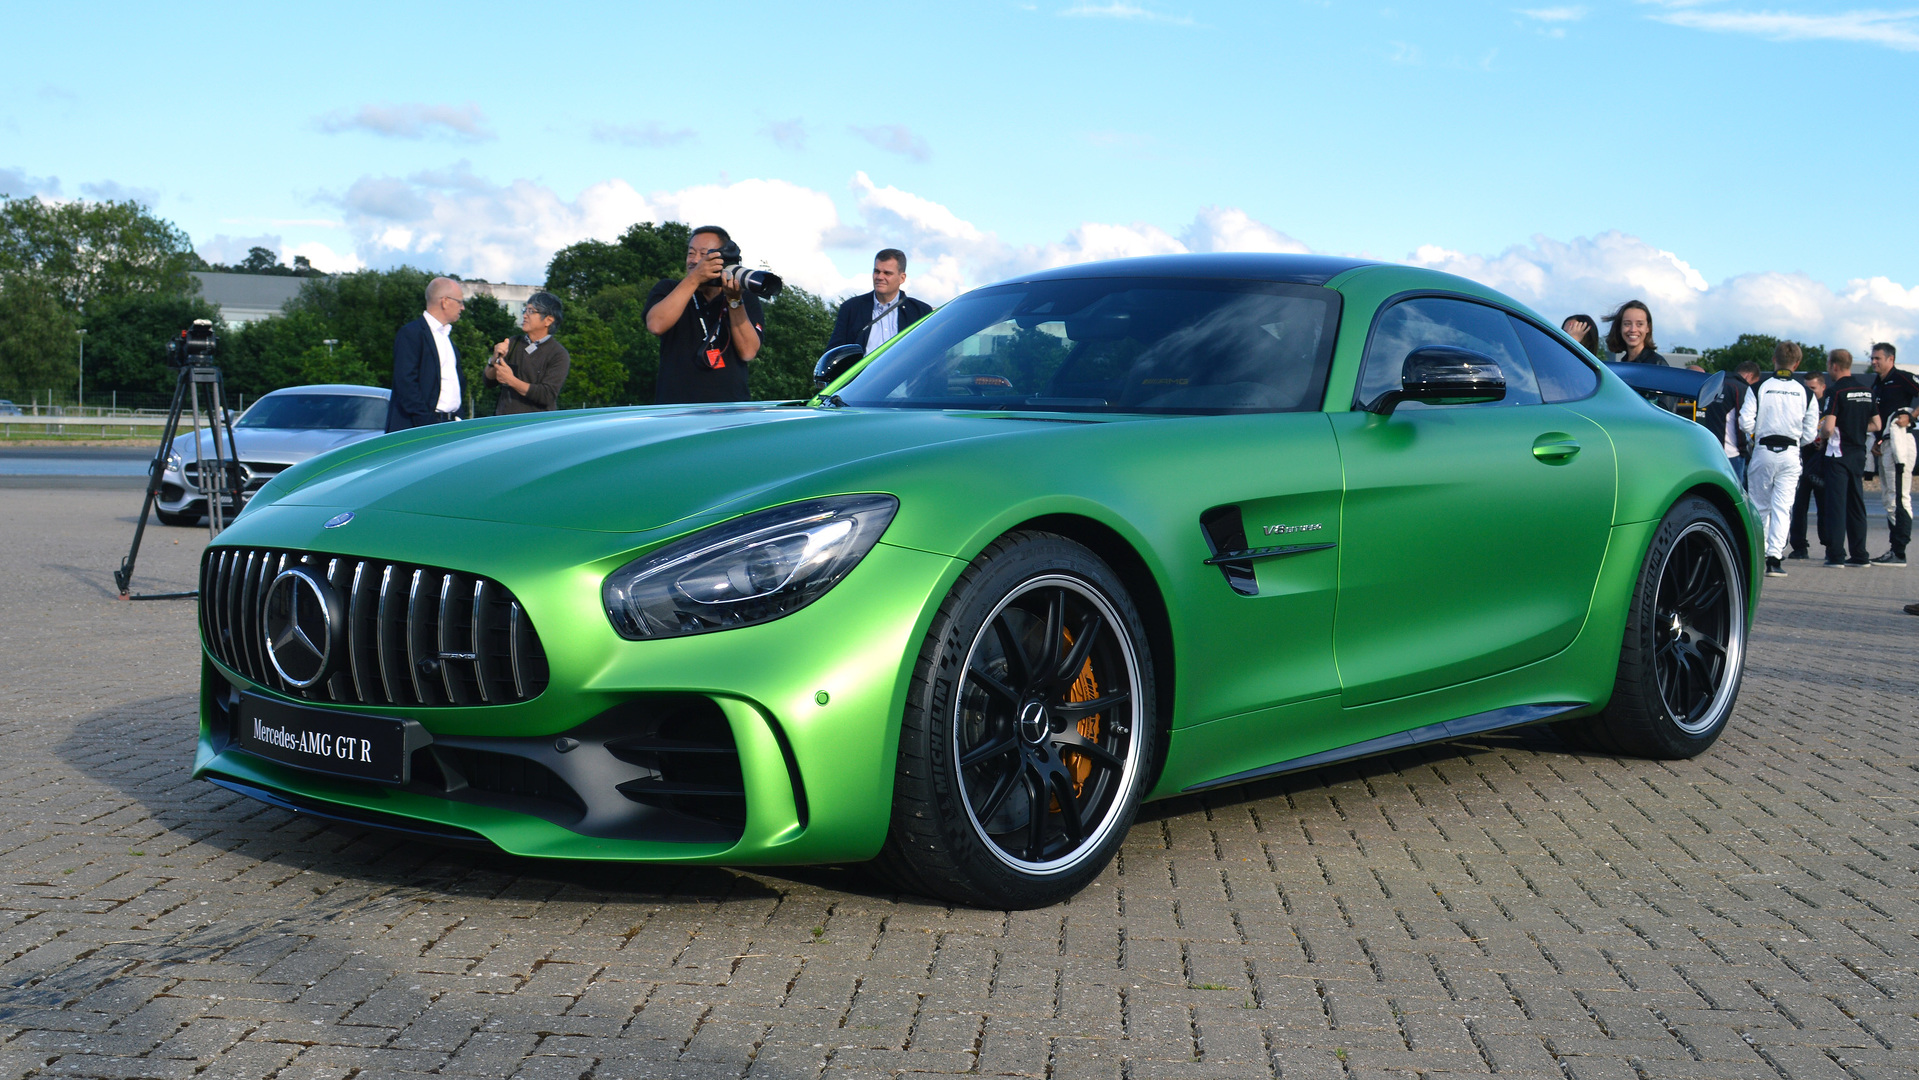 Lewis Hamilton Helps Launch Mercedes Amg Gt R Plus New